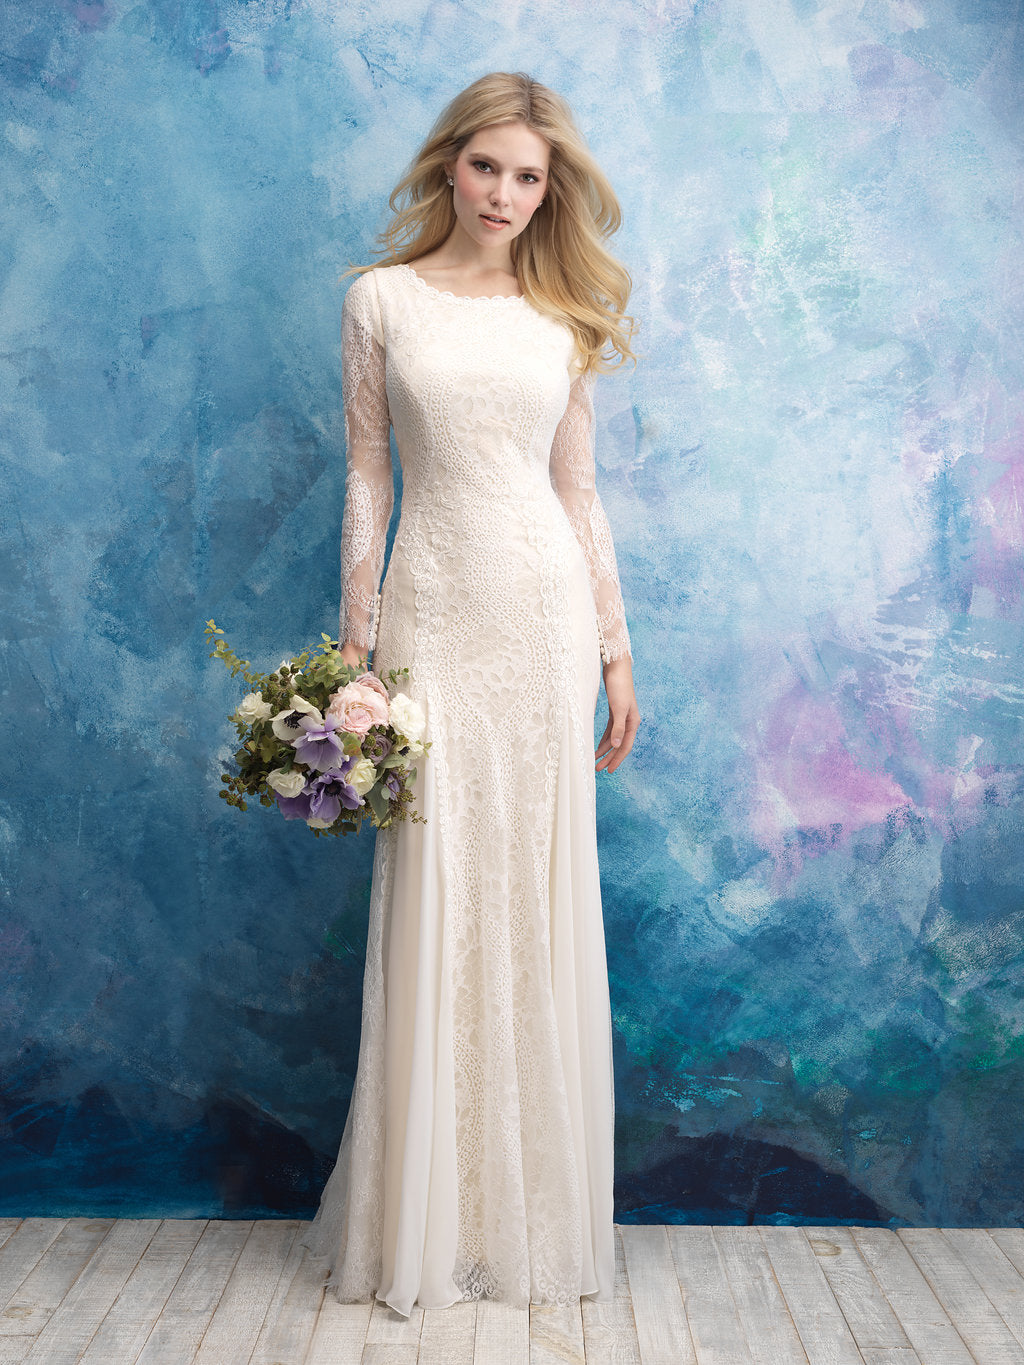 Allure M602 Modest Wedding Dress from A Closet Full of Dresses